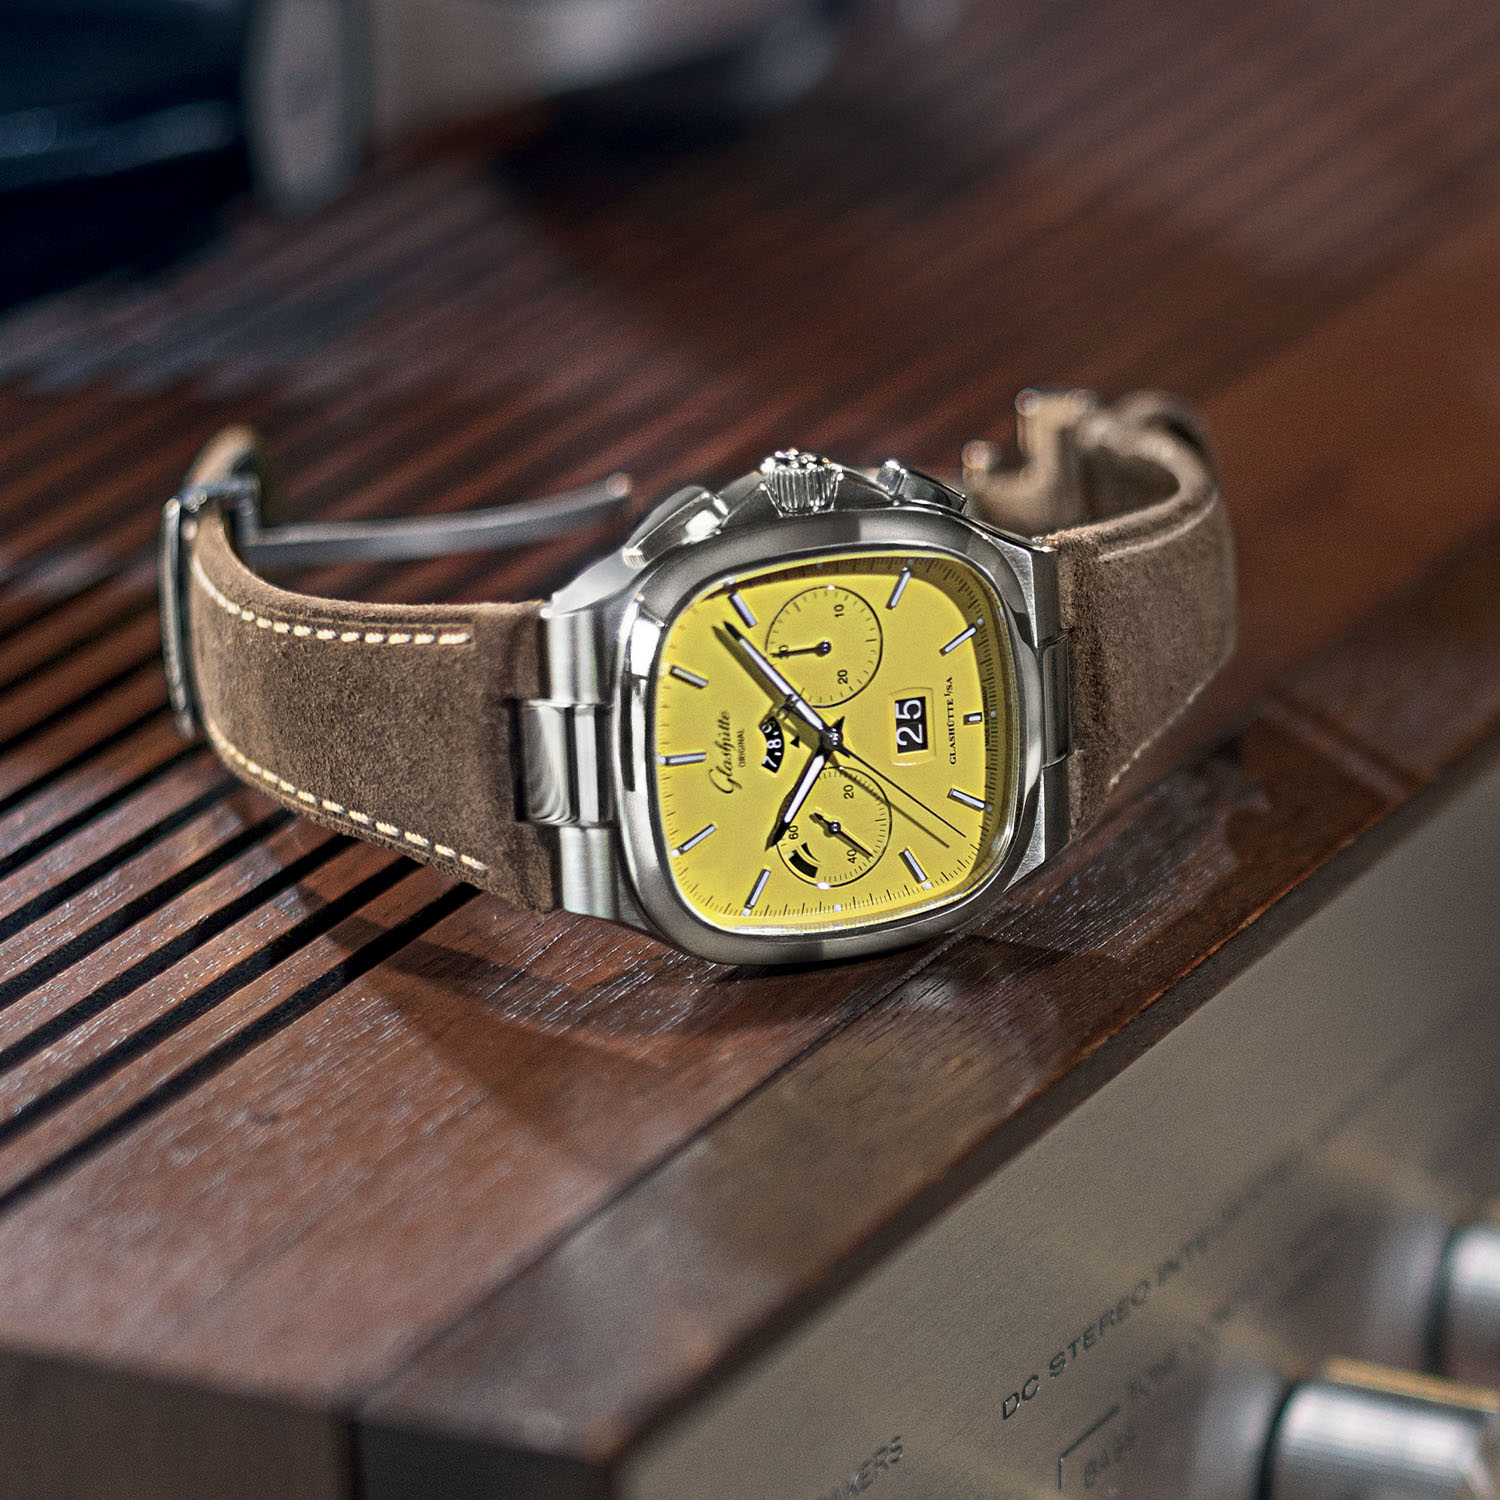 Glashutte Original Seventies Chronograph Panorama Date 2021 Limited Editions sunny yellow - 1